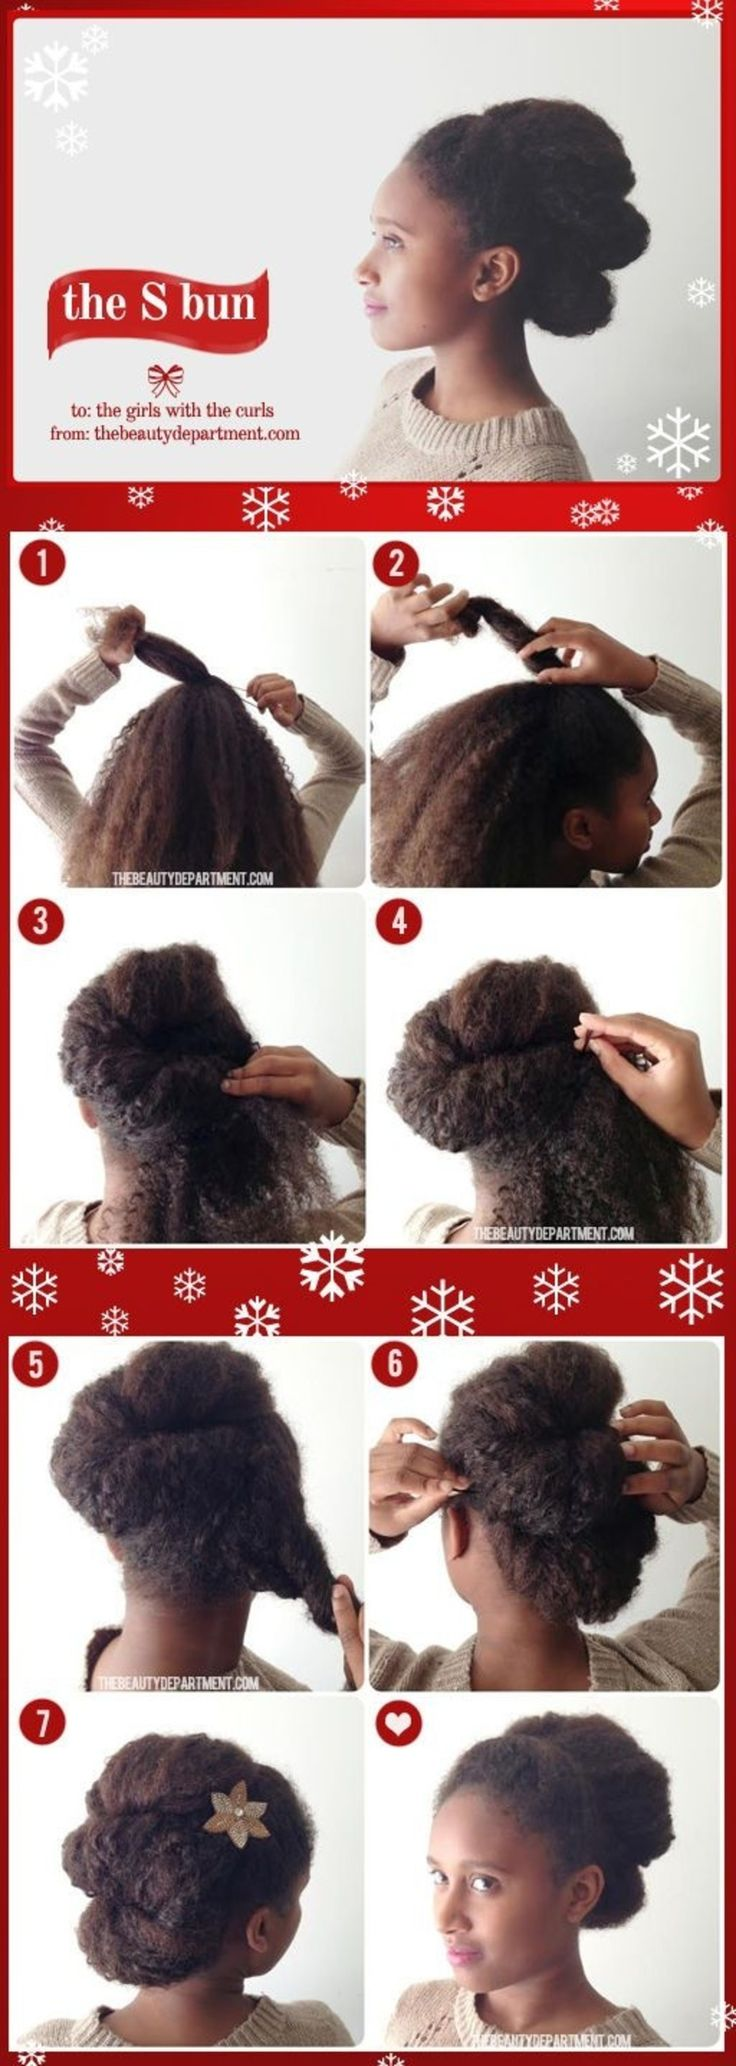 best natural hair donut care images on pinterest natural hair